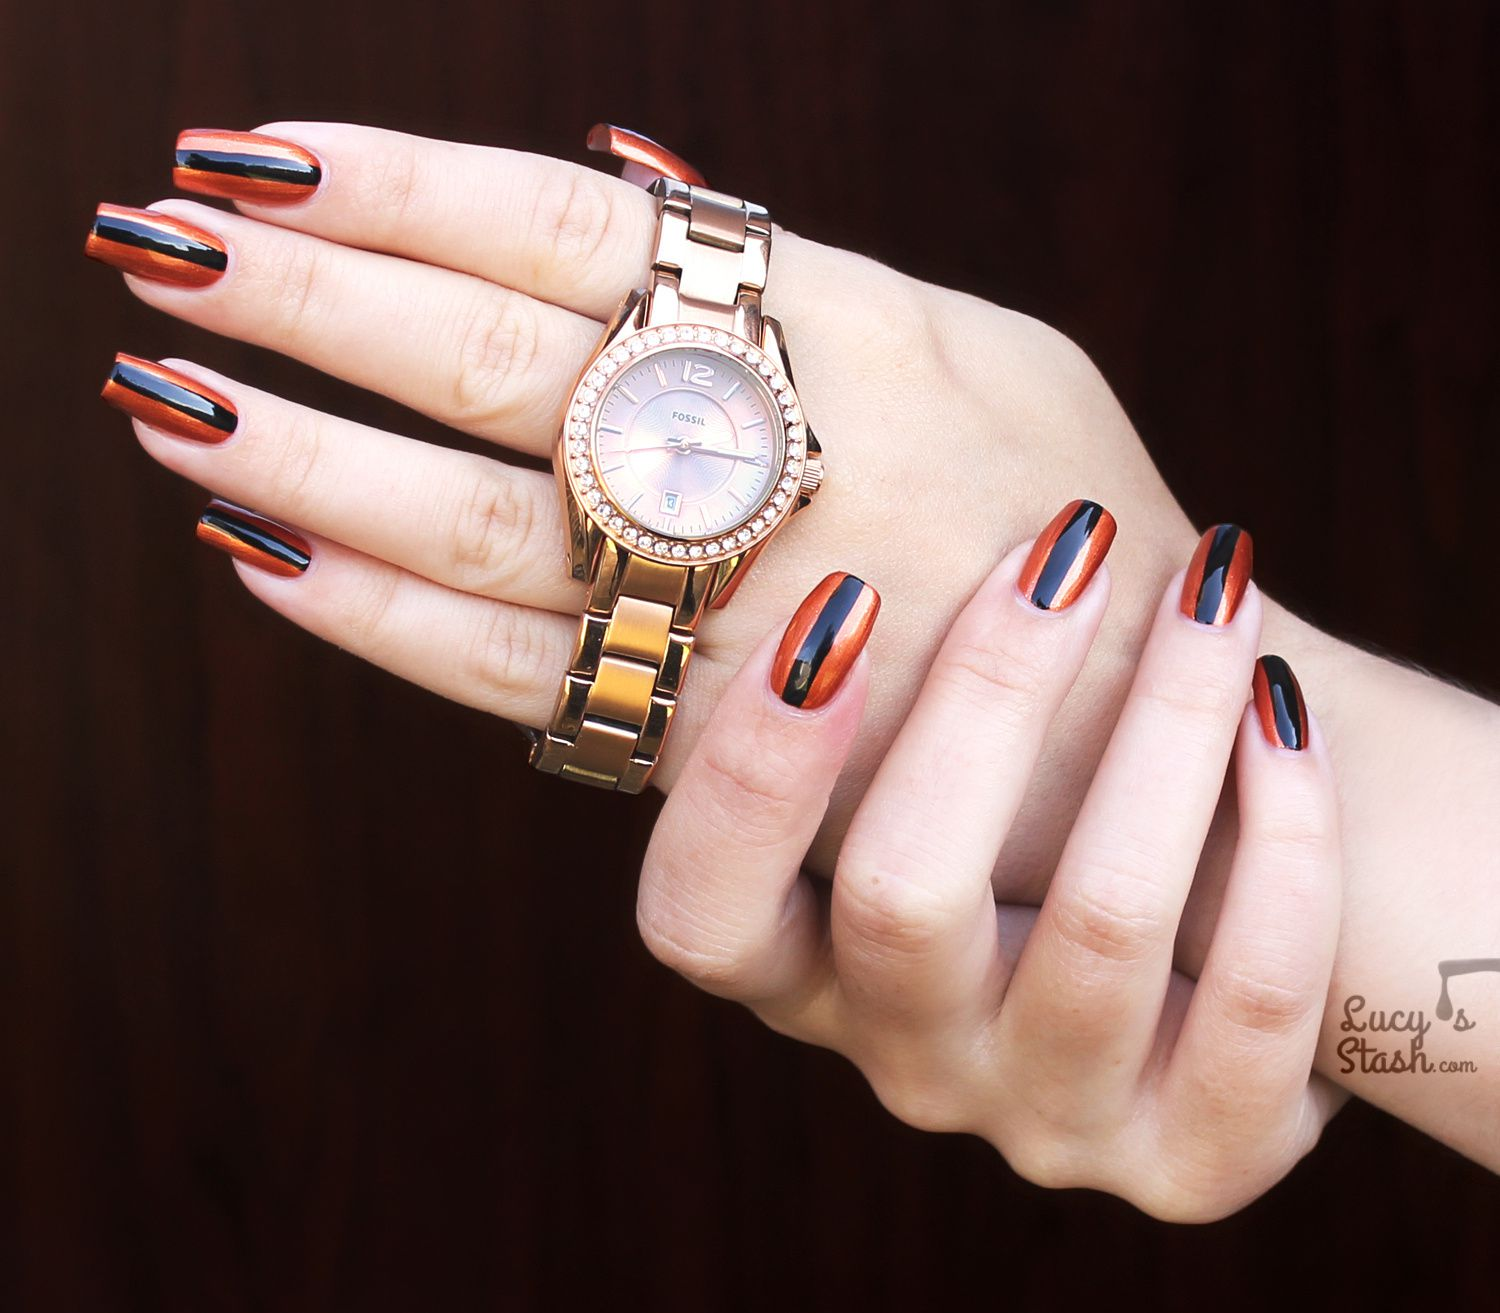 Fossil Watch Review & Chic Nail Art Design